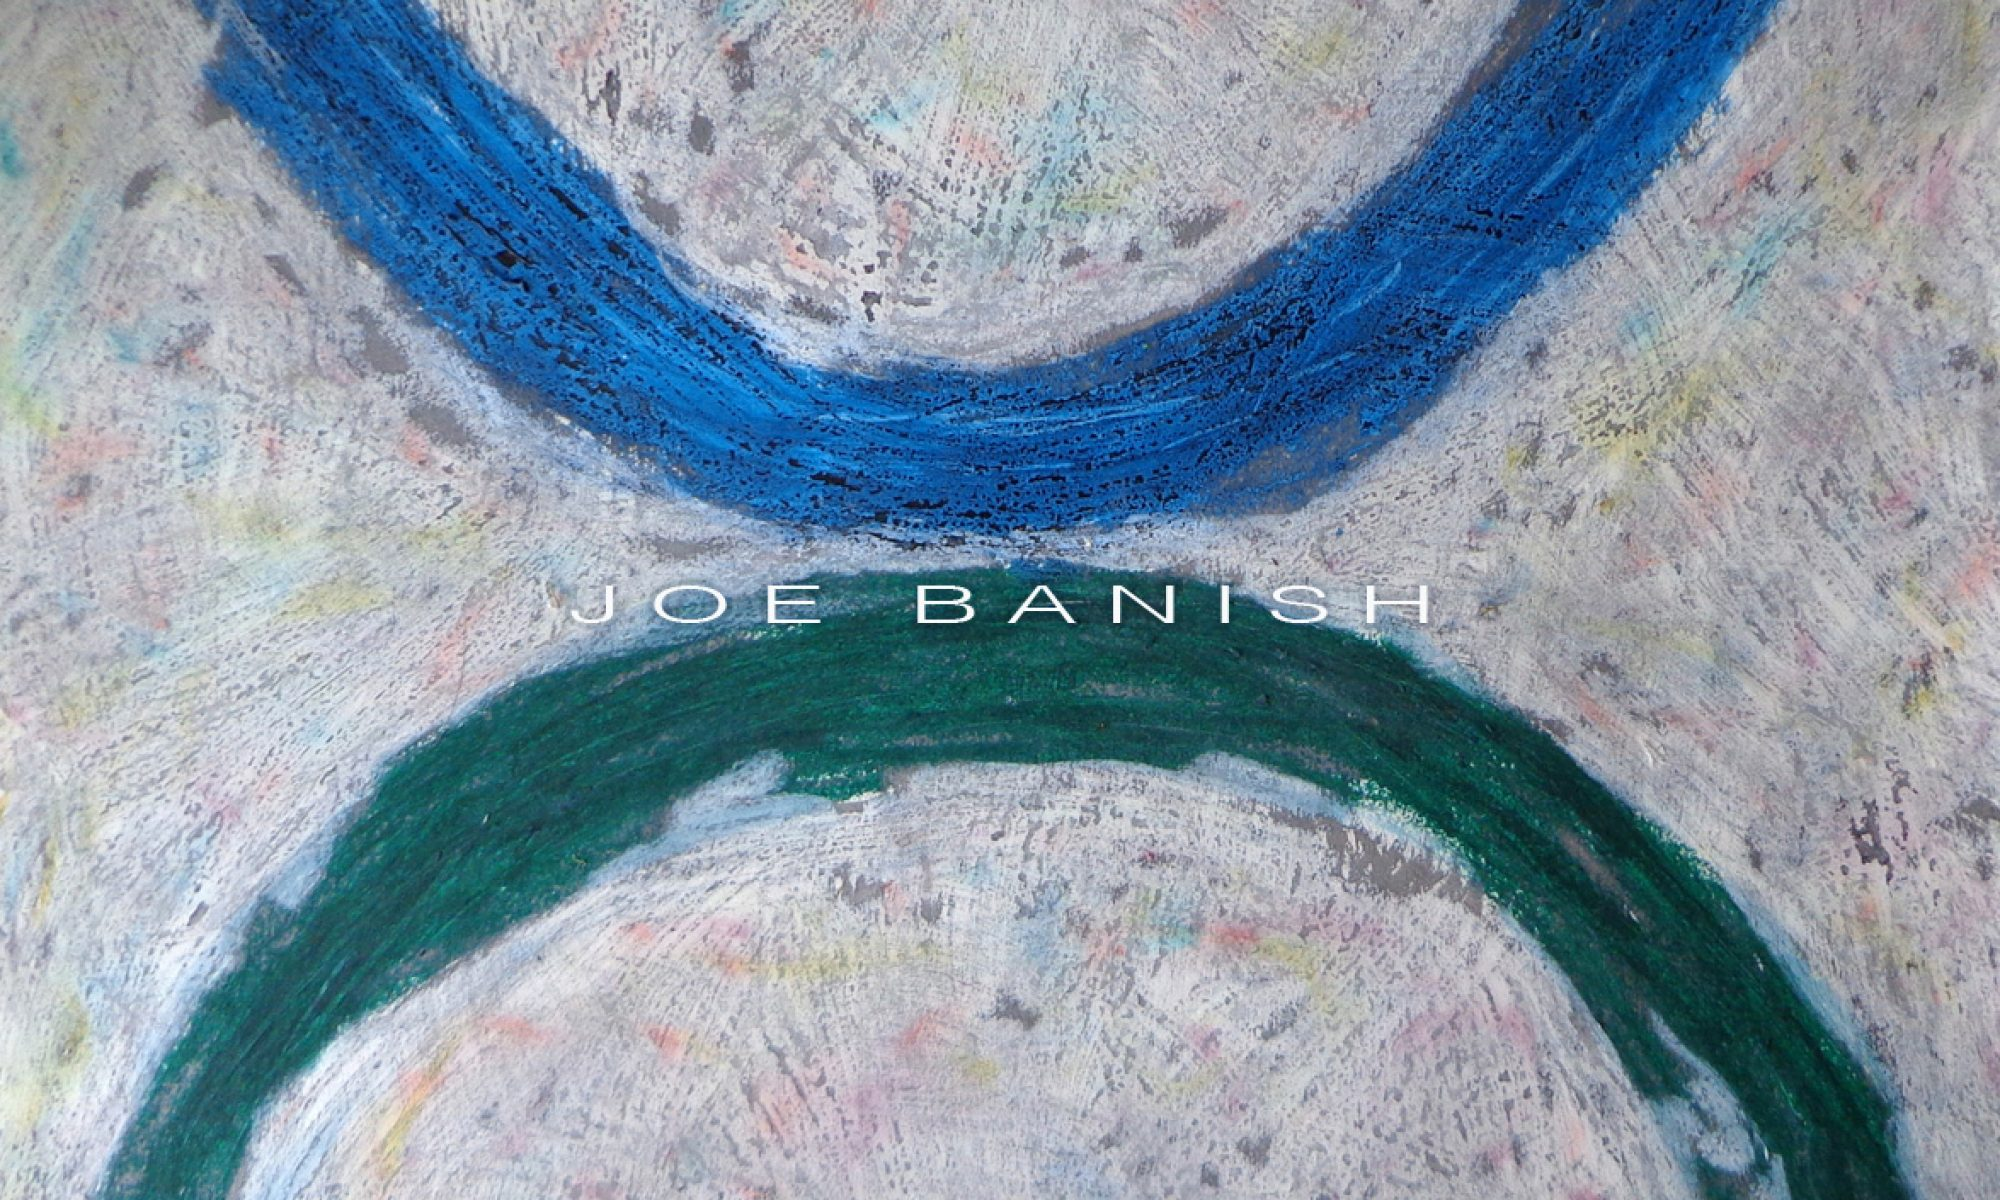 joe banish